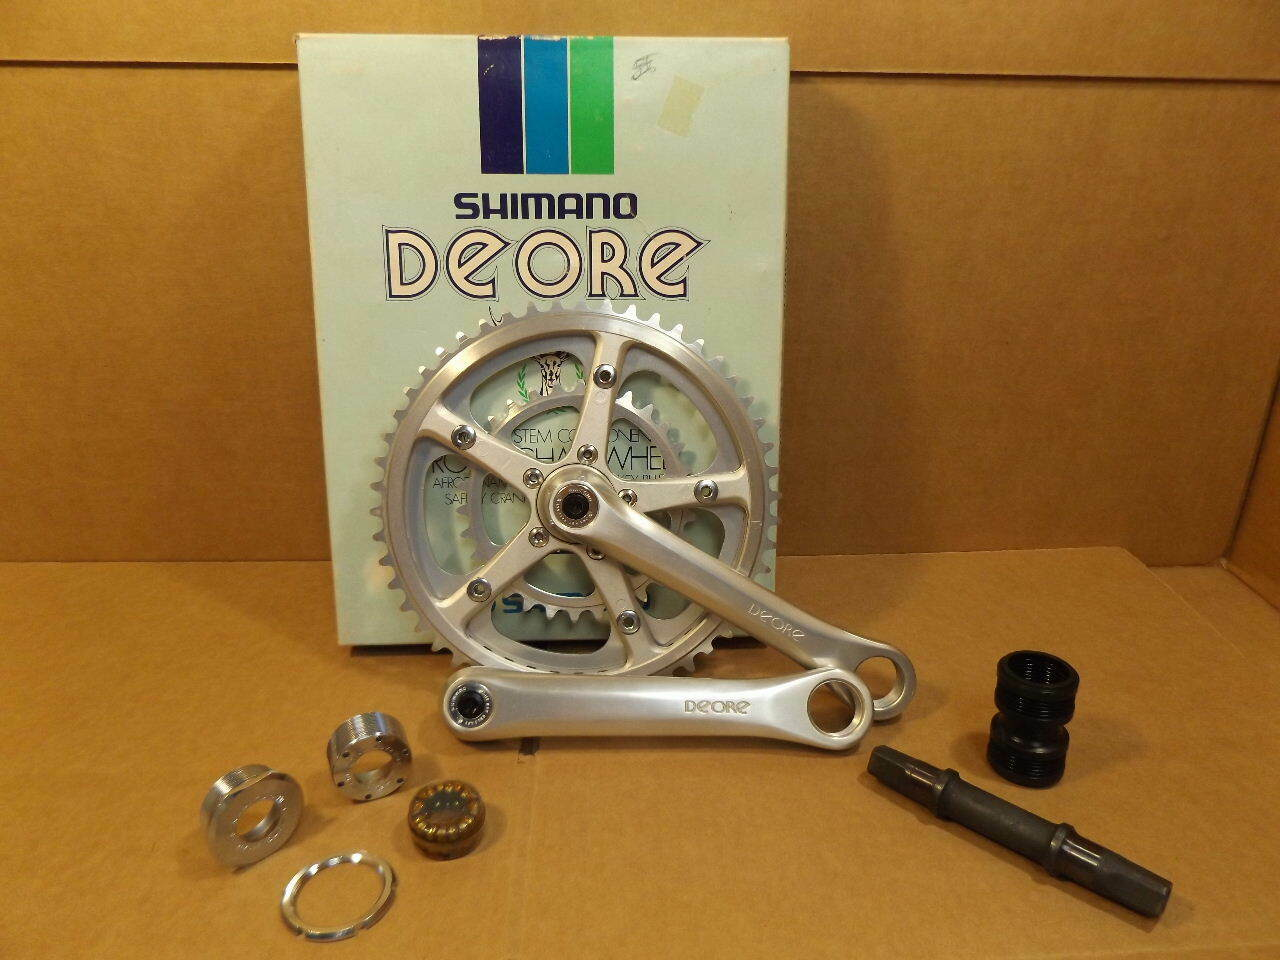 NOS Shimano Deore Crankset (FC-DE31) w 170 mm  Crankarms and 50x45x30 Chainrings  here has the latest